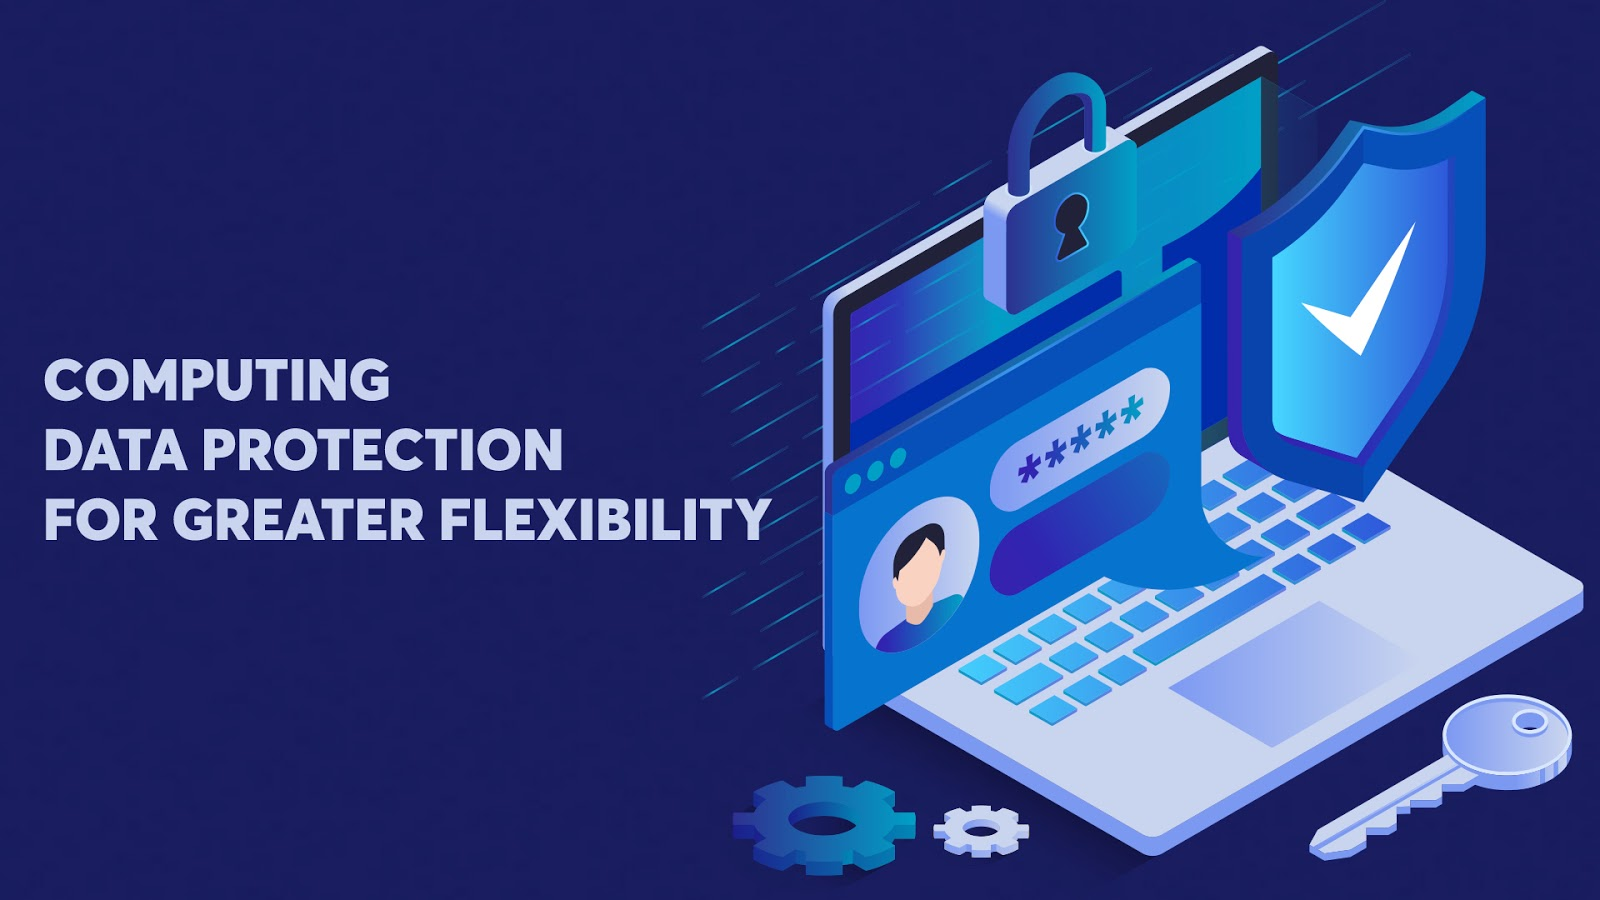 Computing Data Protection for Greater Flexibility